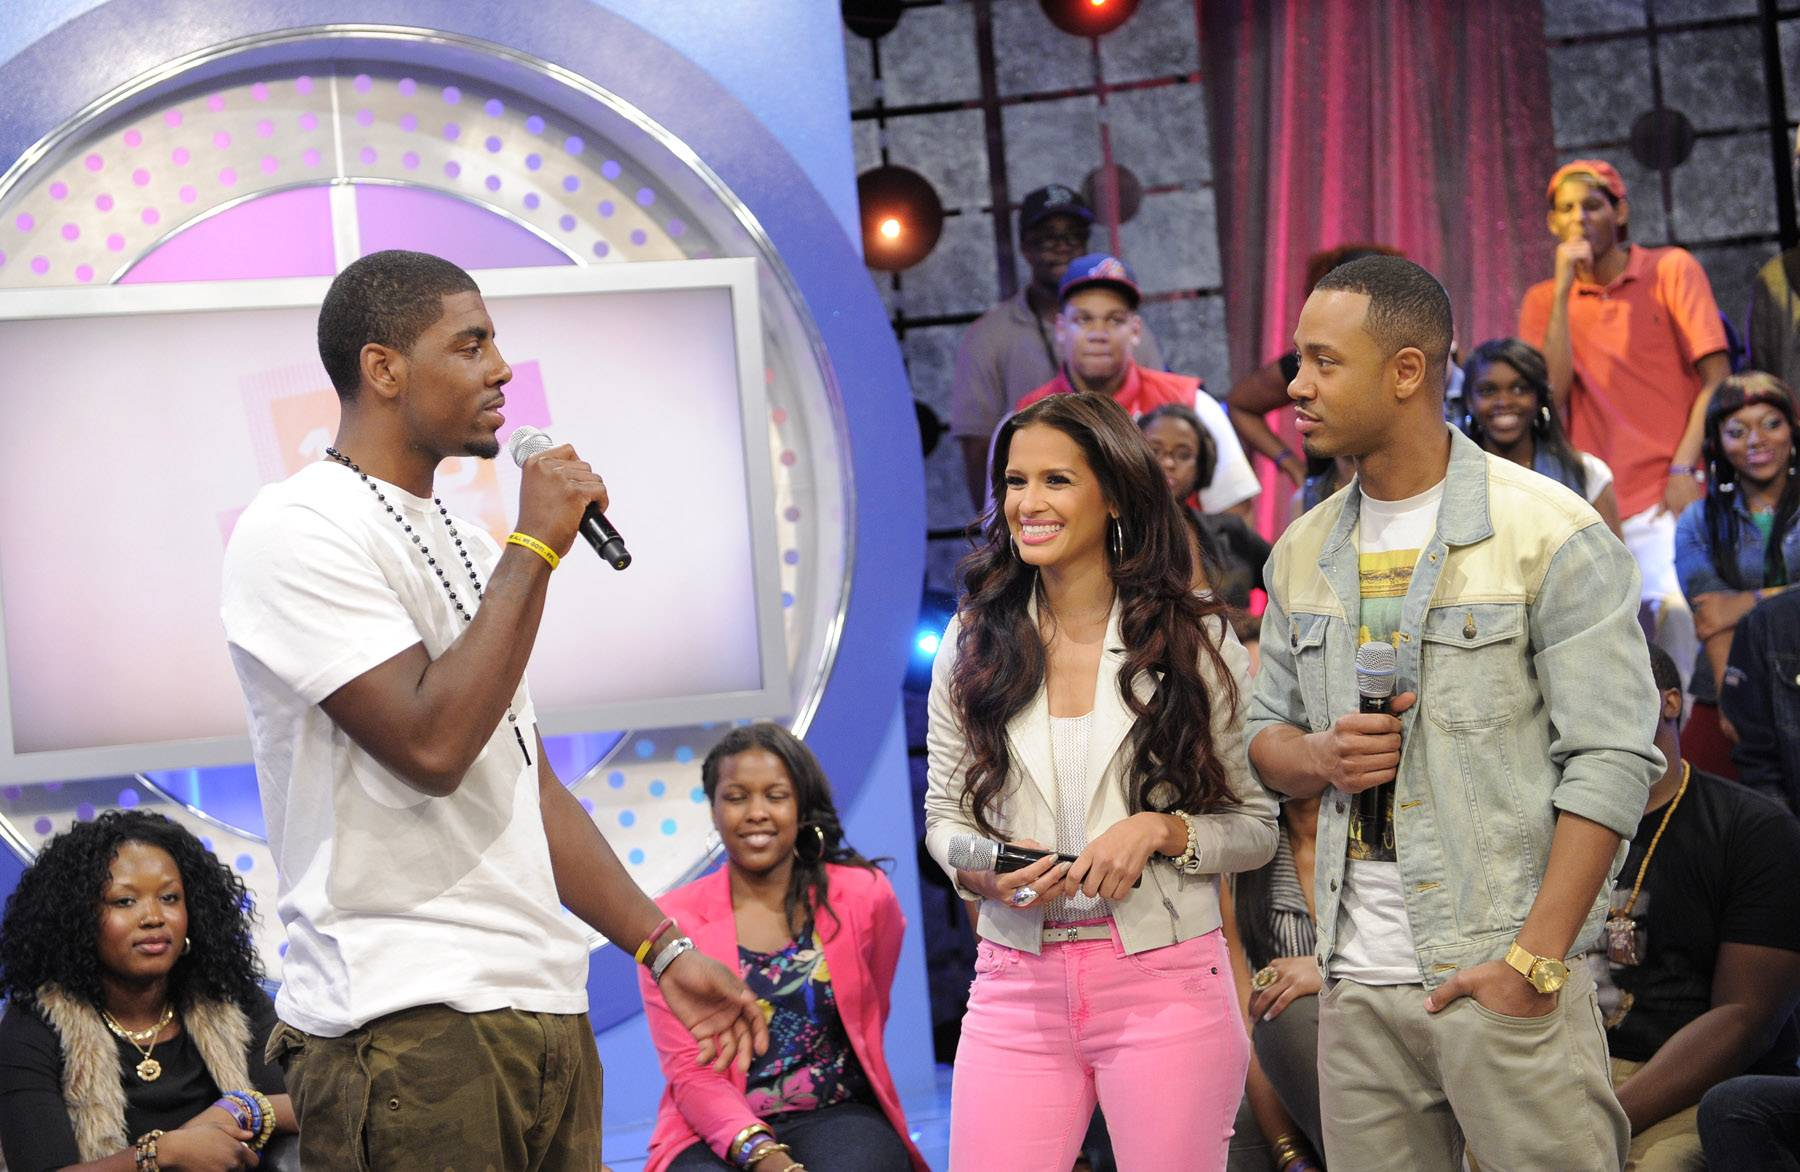 I did it - Kyrie Irving with Rocsi Diaz and Terrence J at 106 & Park, May 16, 2012. (Photo: John Ricard / BET)